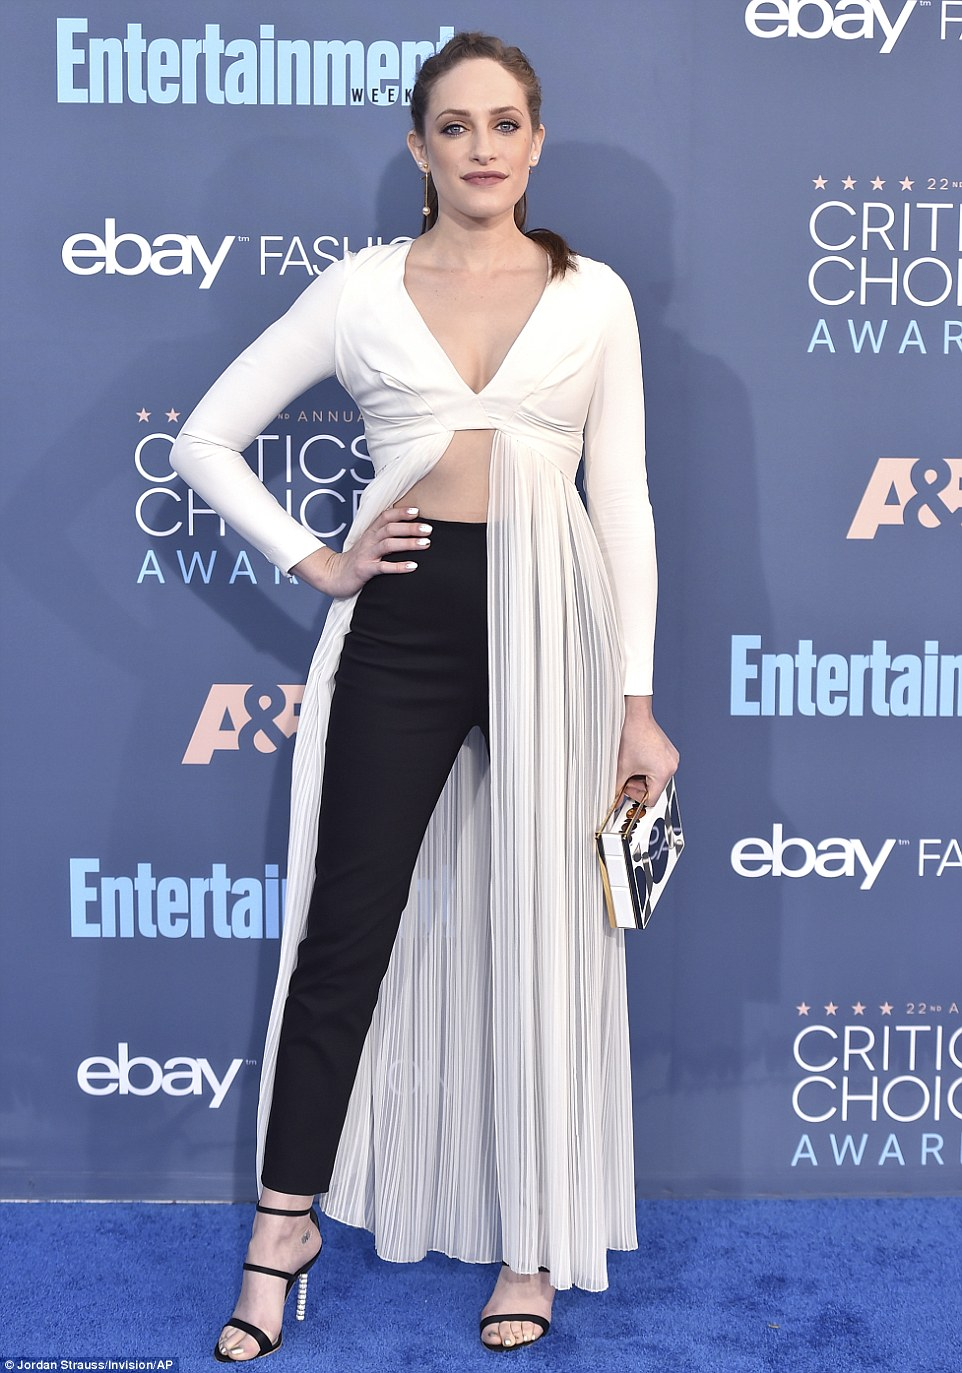 Couldn't decide? Actress Carly Chaikin wore trousers and a dress